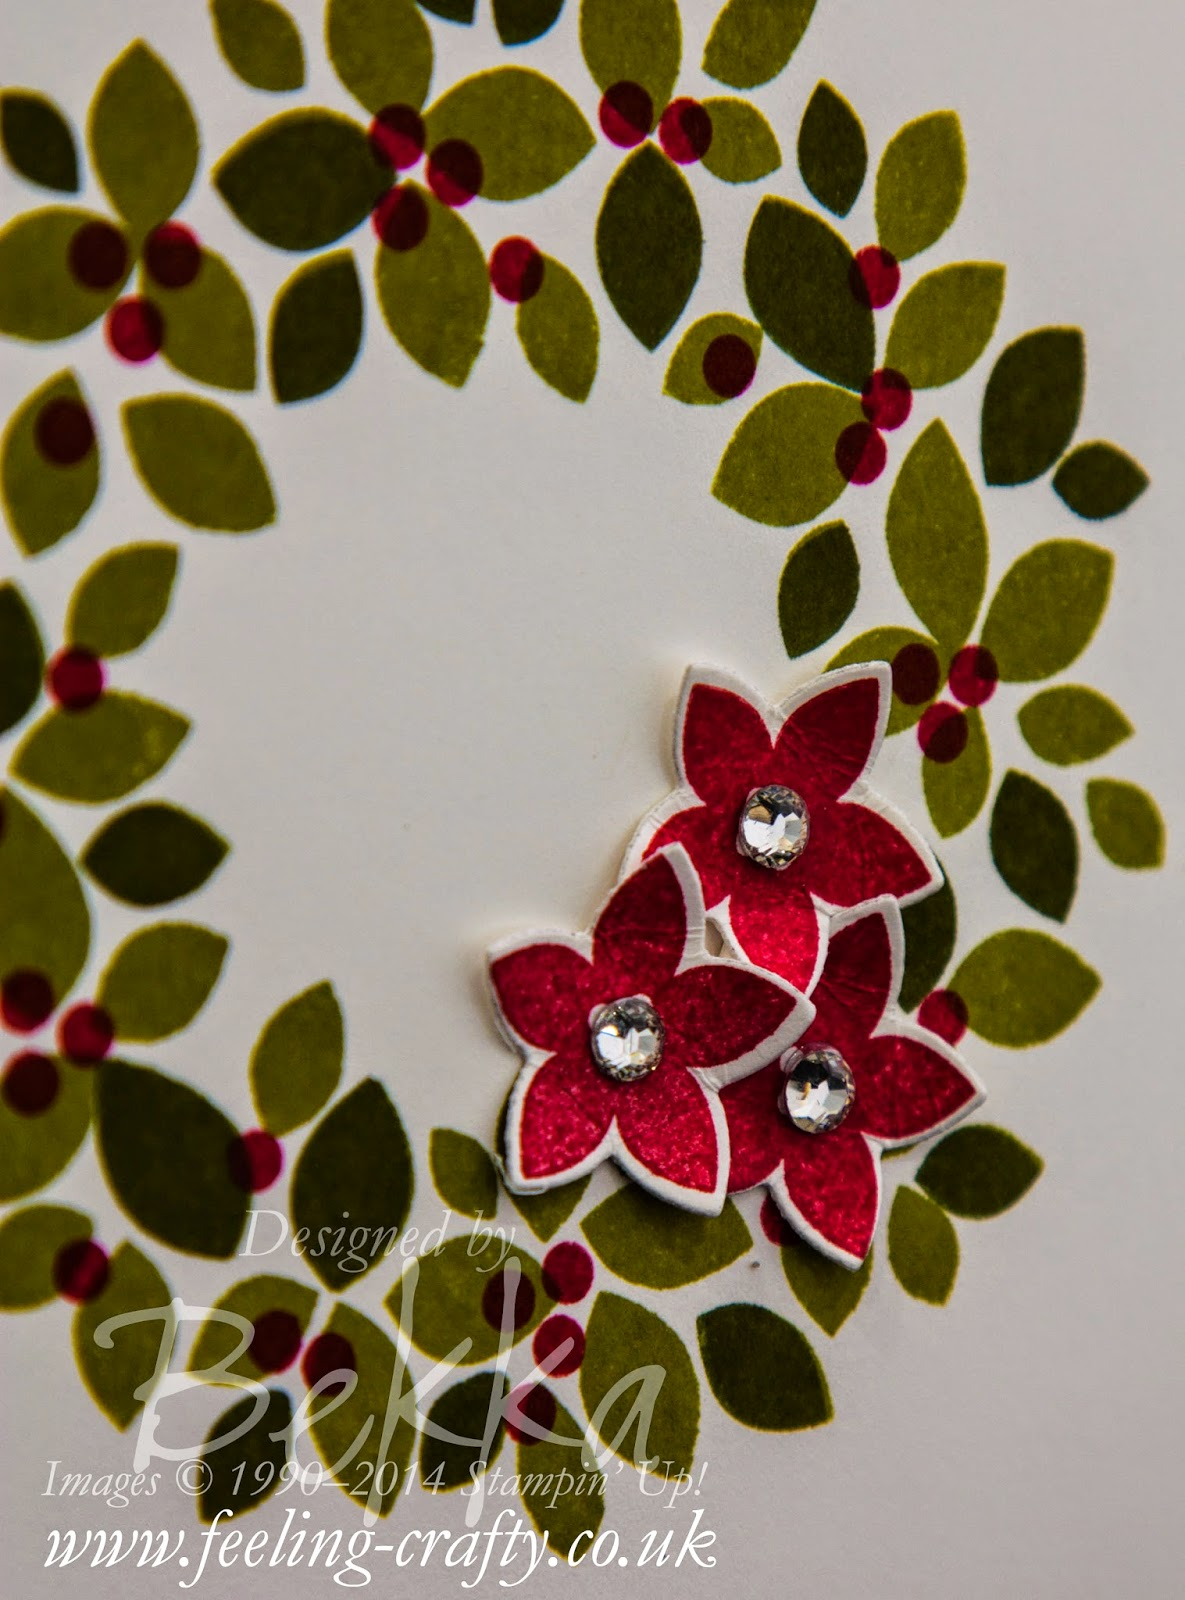 Wondrous Wreath Christmas Card by Stampin' Up! UK Independent Demonstrator Bekka Prideaux - check this blog for lots of great ideas